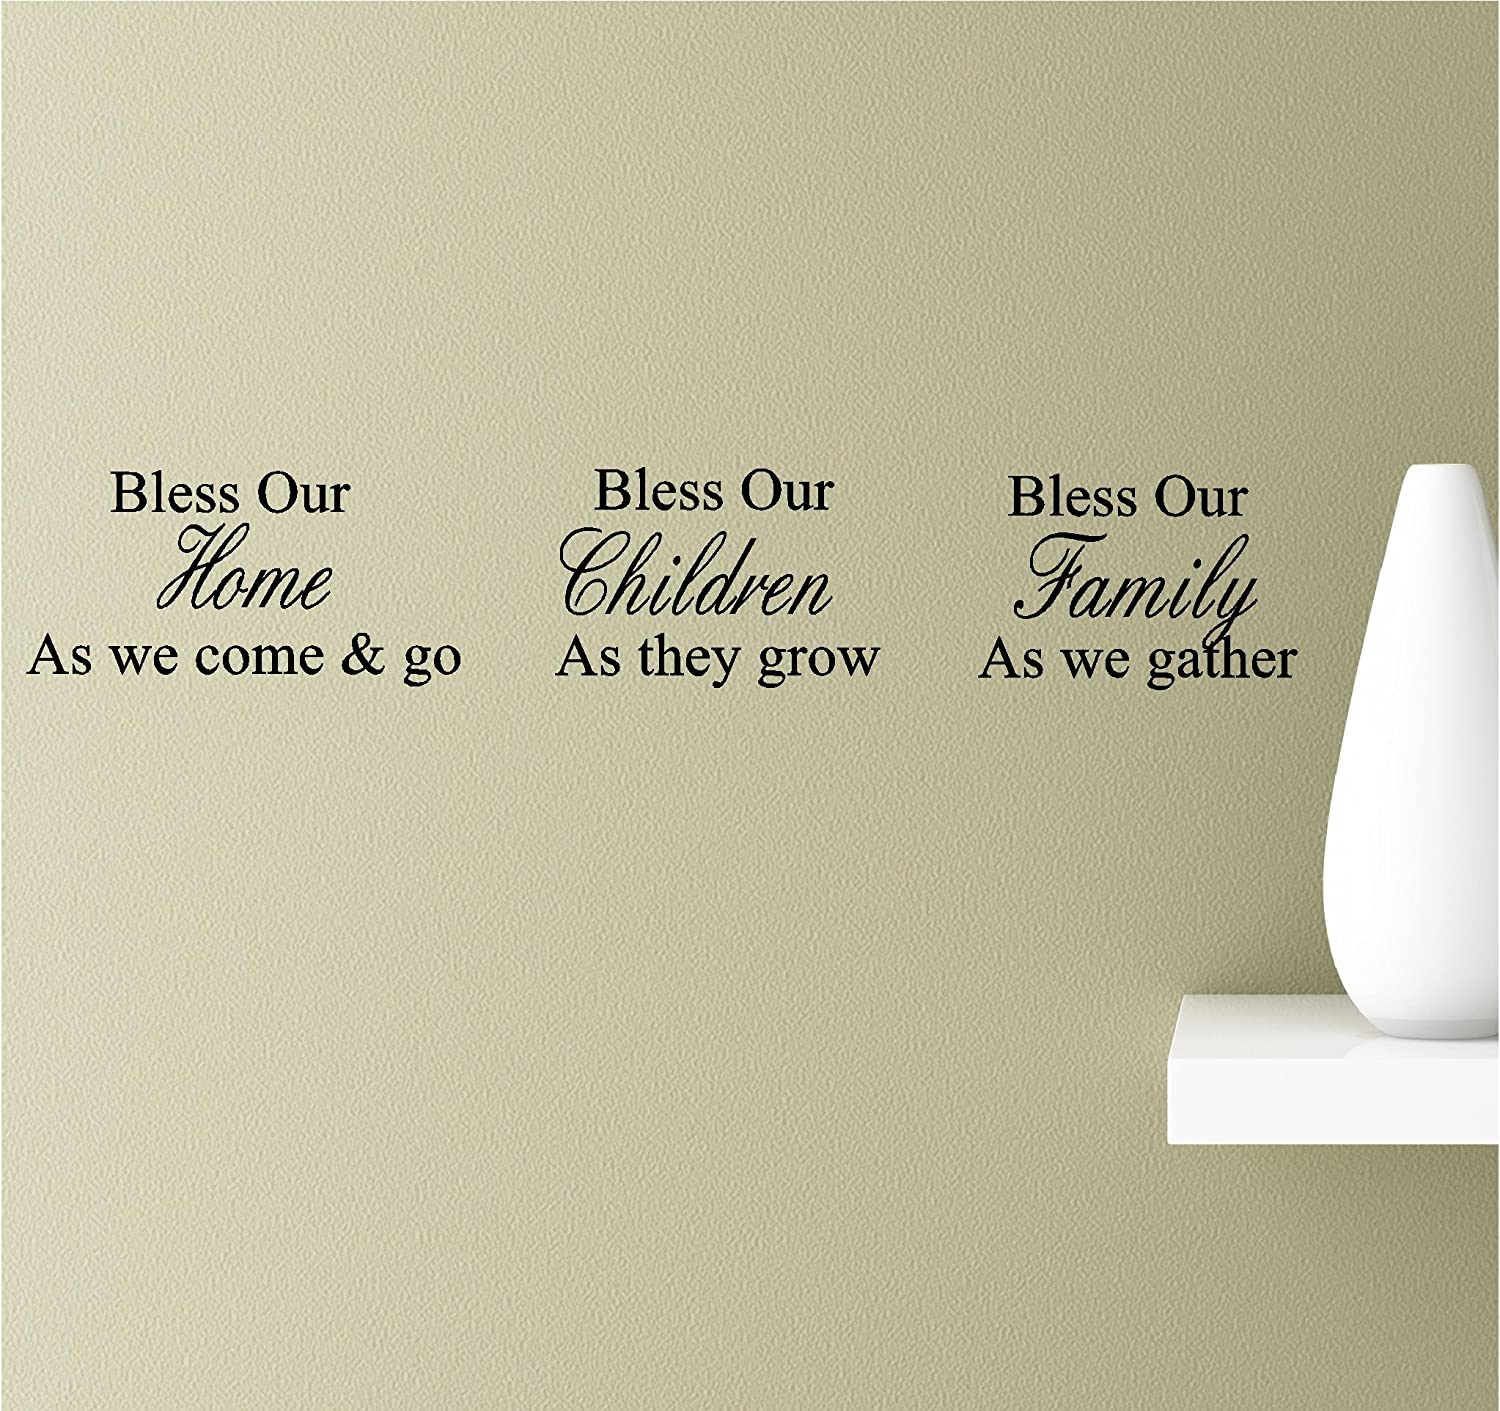 Bless Our Home as we Come & go, Bless Our Children as They Grow, Bless Our Family as we Gather. Vinyl Wall Art Inspirational Quotes Decal Sticker